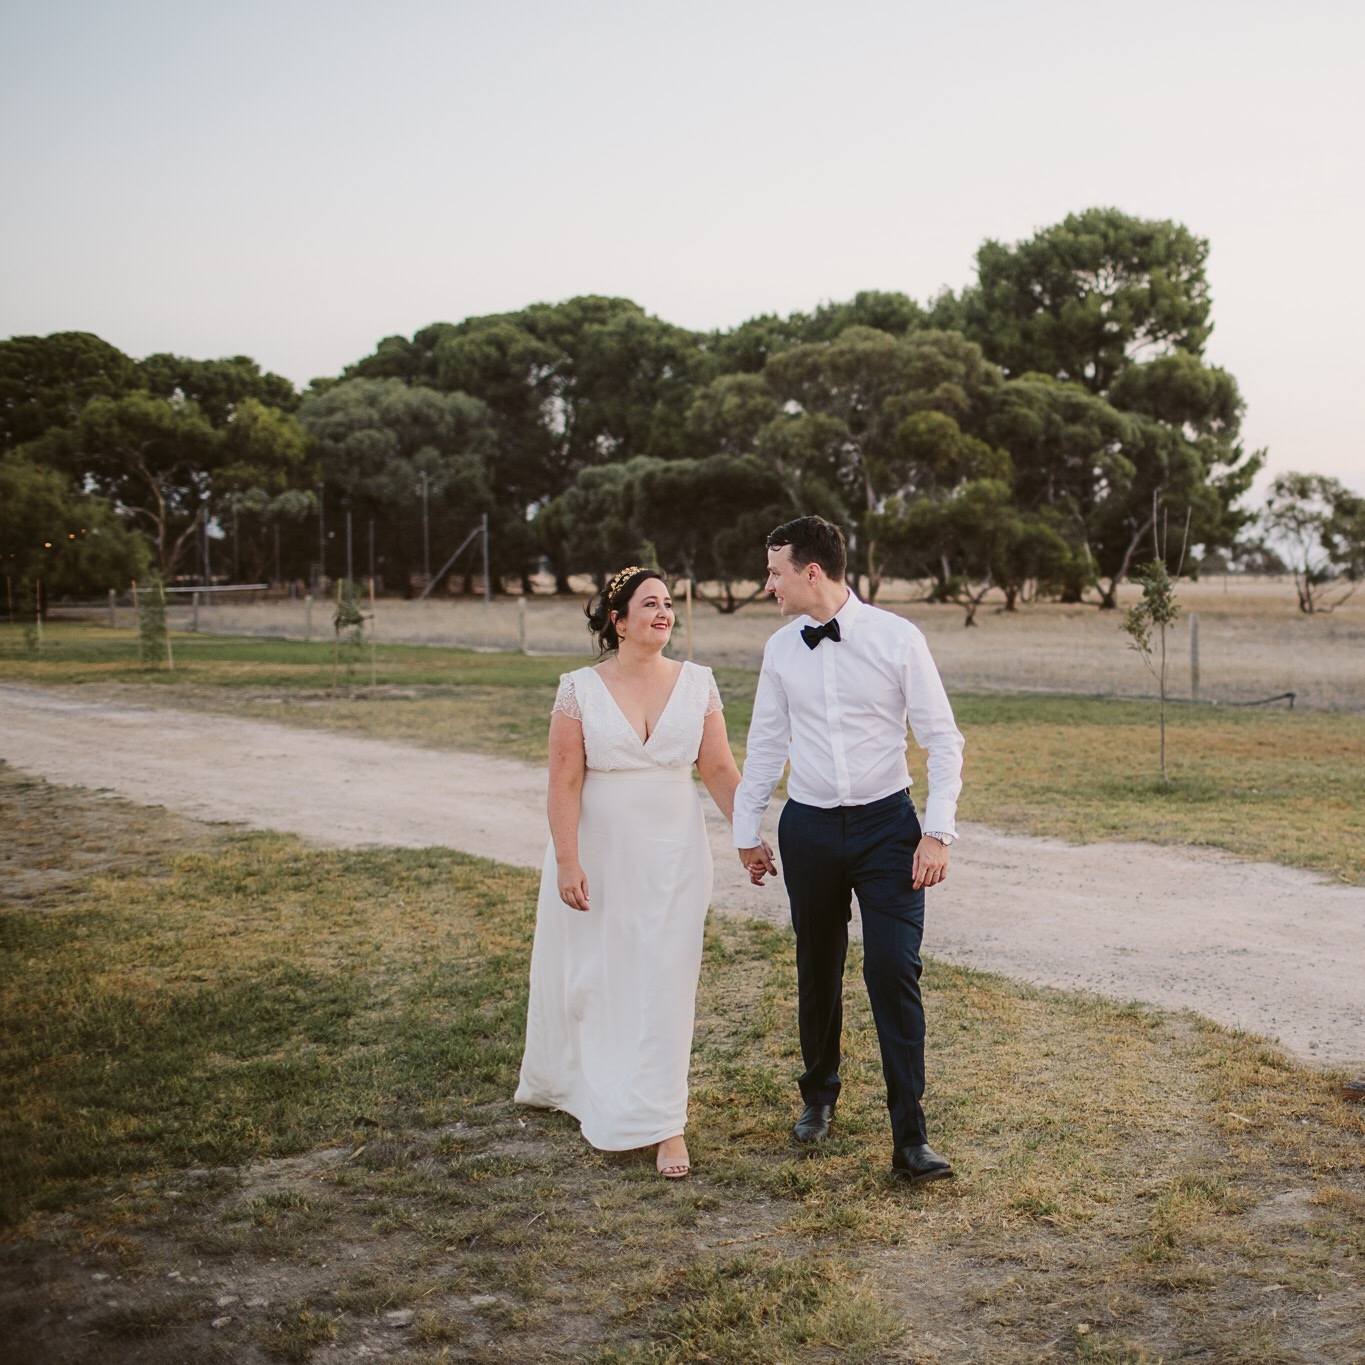 Our wedding was at my family home in country South Australia. Photo by Kate Pardey